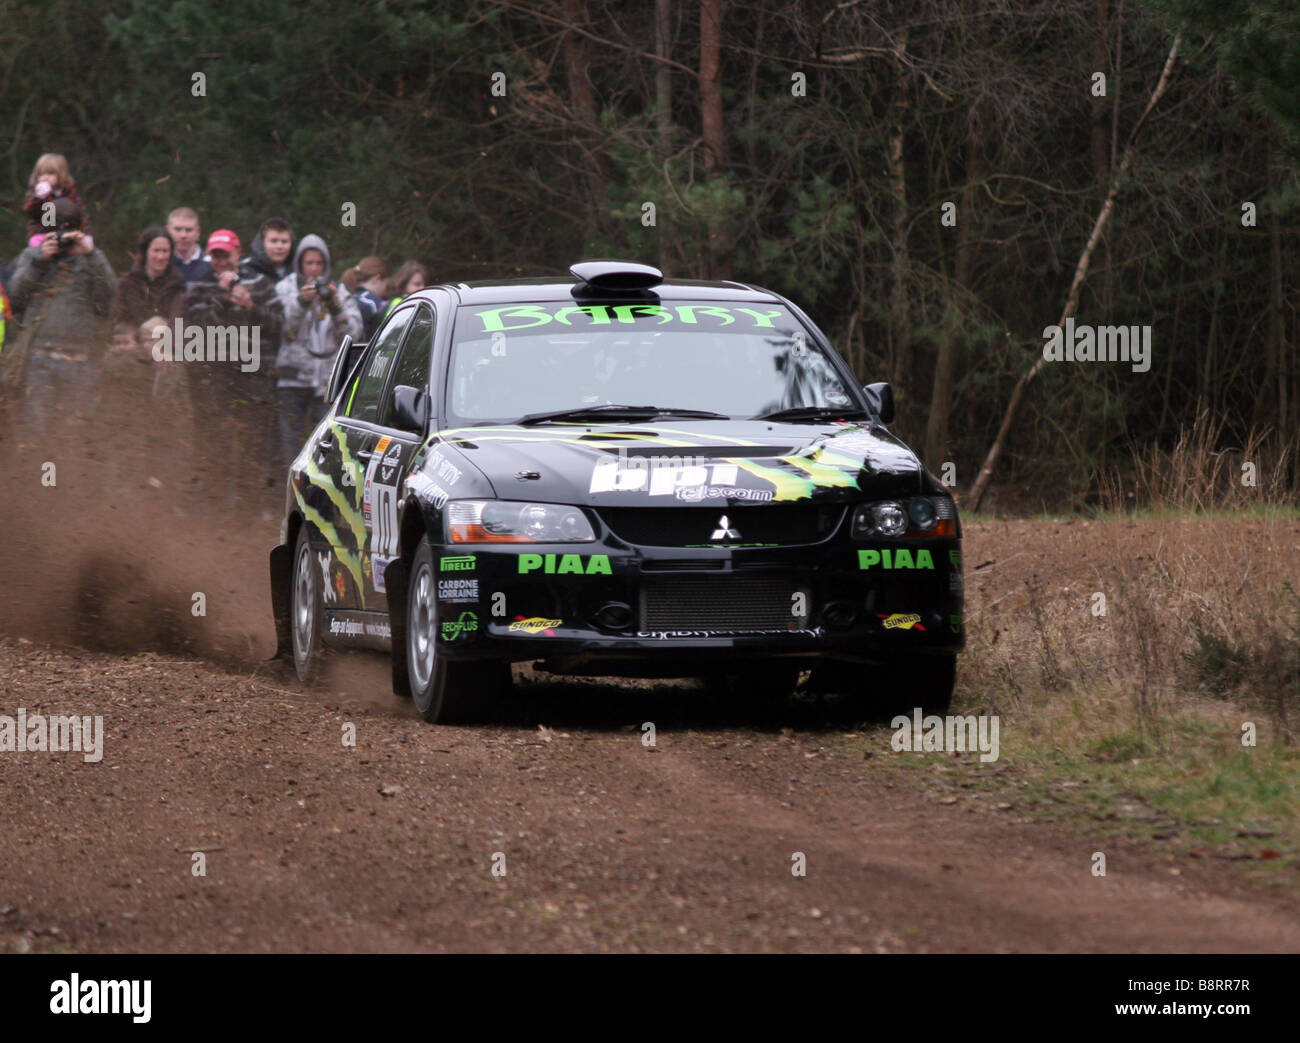 Action shot of rally car preforming at Rallye Sunseeker 2009 - Stock Image